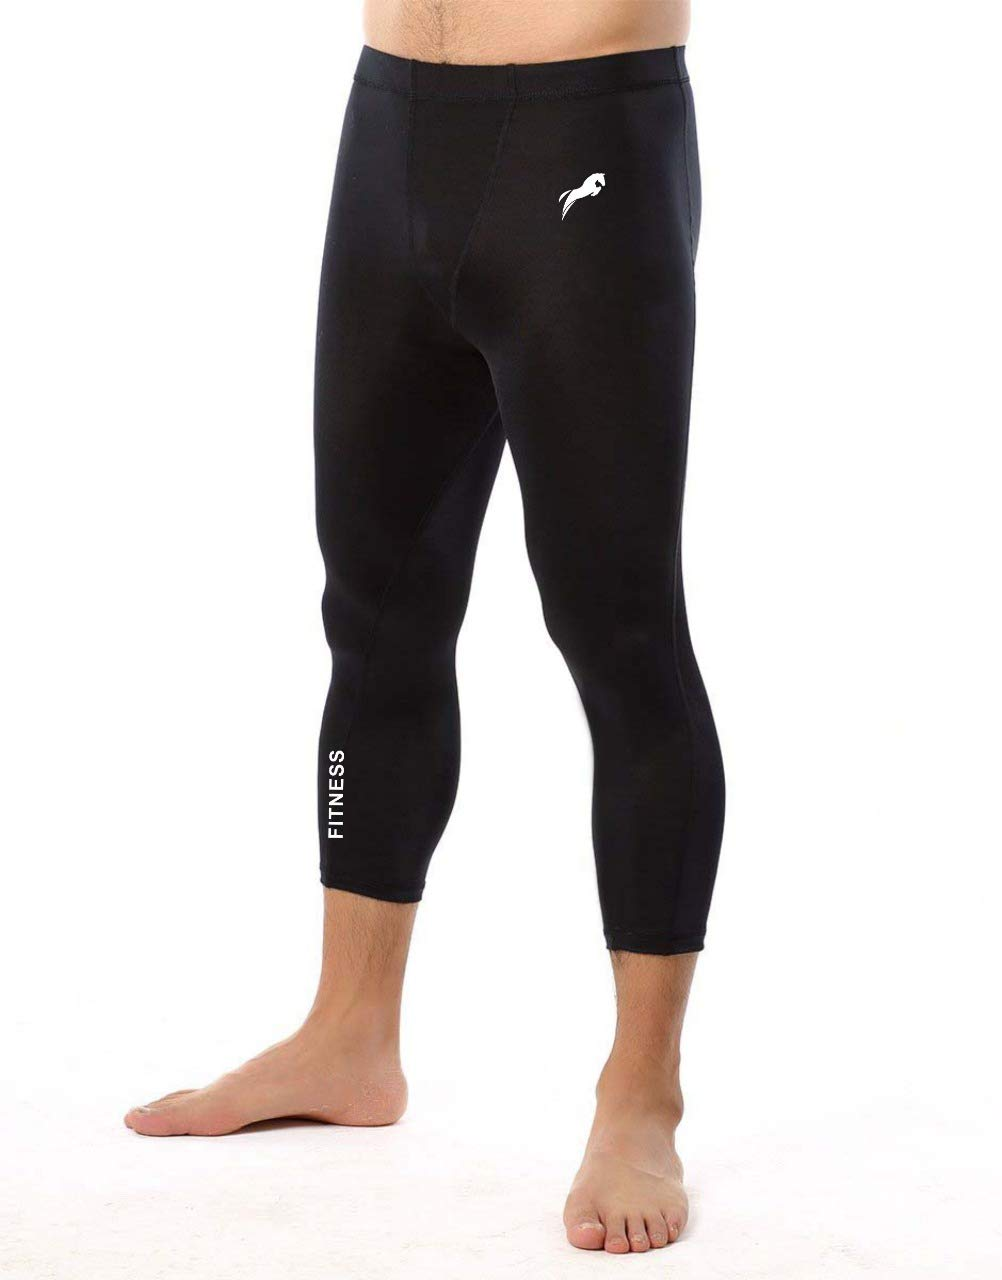 Rider 3/4 Men & Women Unisex Capri Length Compression Tights Fitness & Other Outdoor Inner Wear Multi Sports Cycling, Cricket, Football, Badminton, Gym, product image